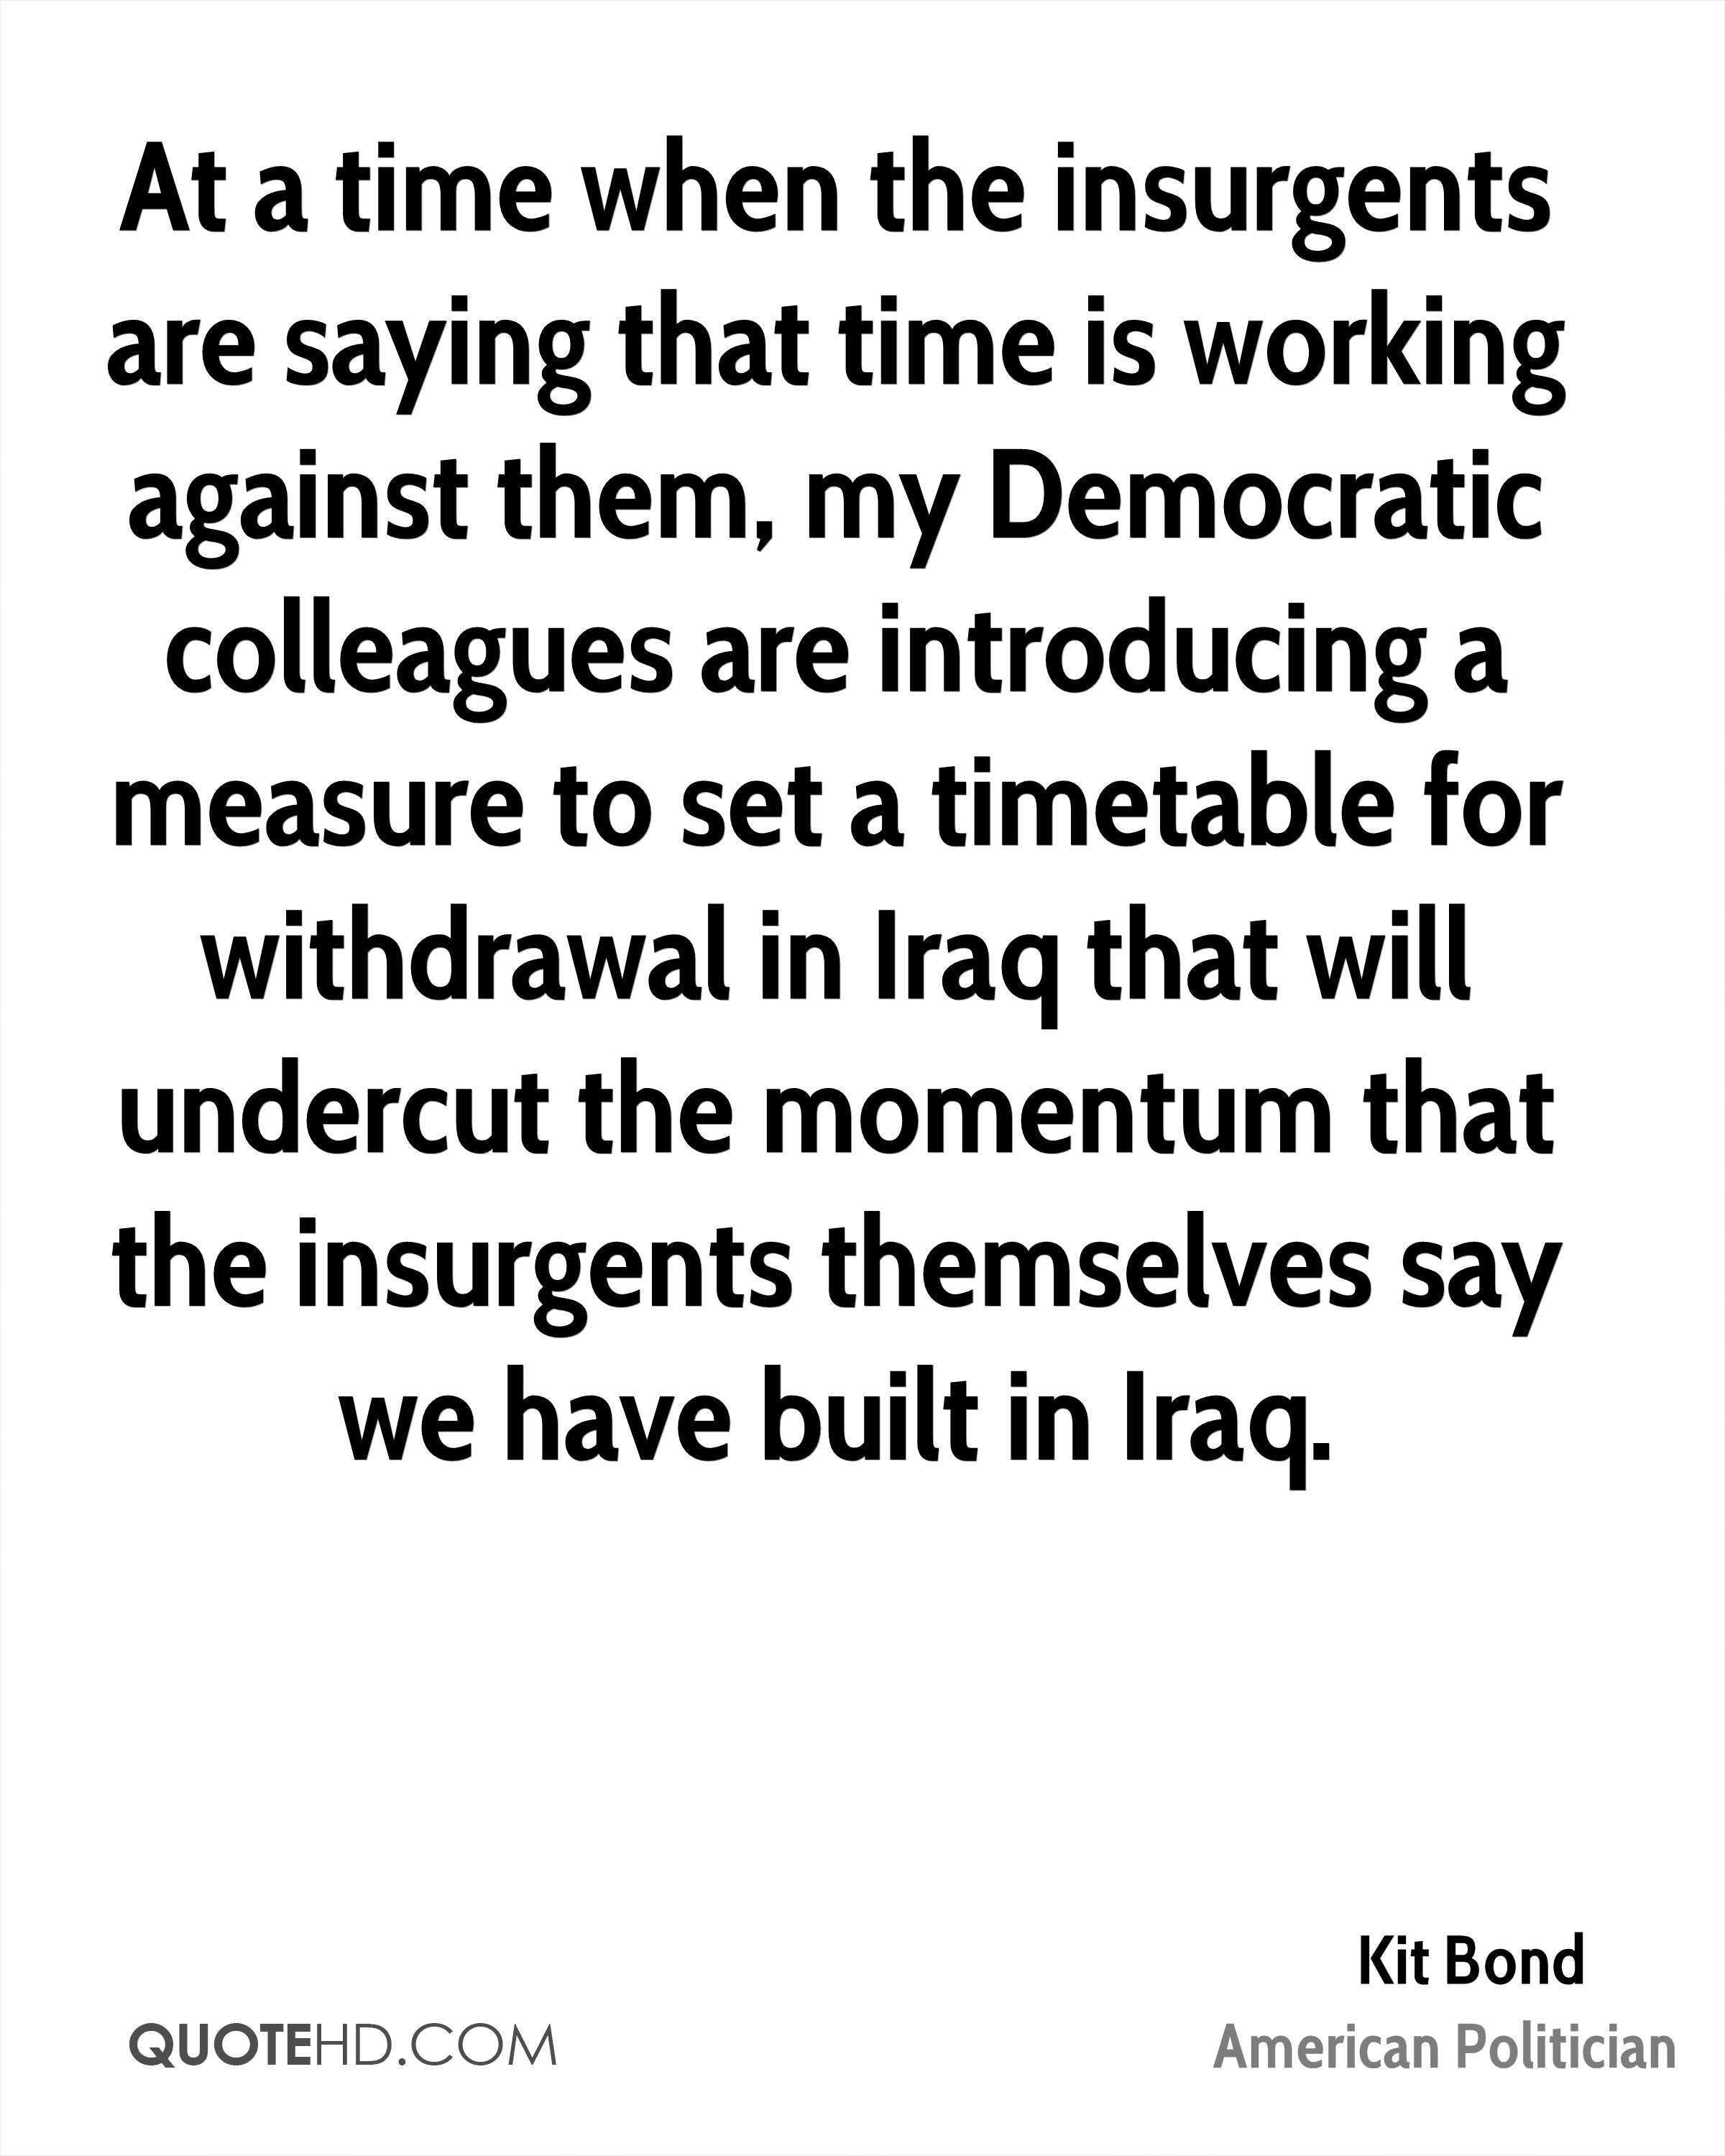 At a time when the insurgents are saying that time is working against them, my Democratic colleagues are introducing a measure to set a timetable for withdrawal in Iraq that will undercut the momentum that the insurgents themselves say we have built in Iraq.